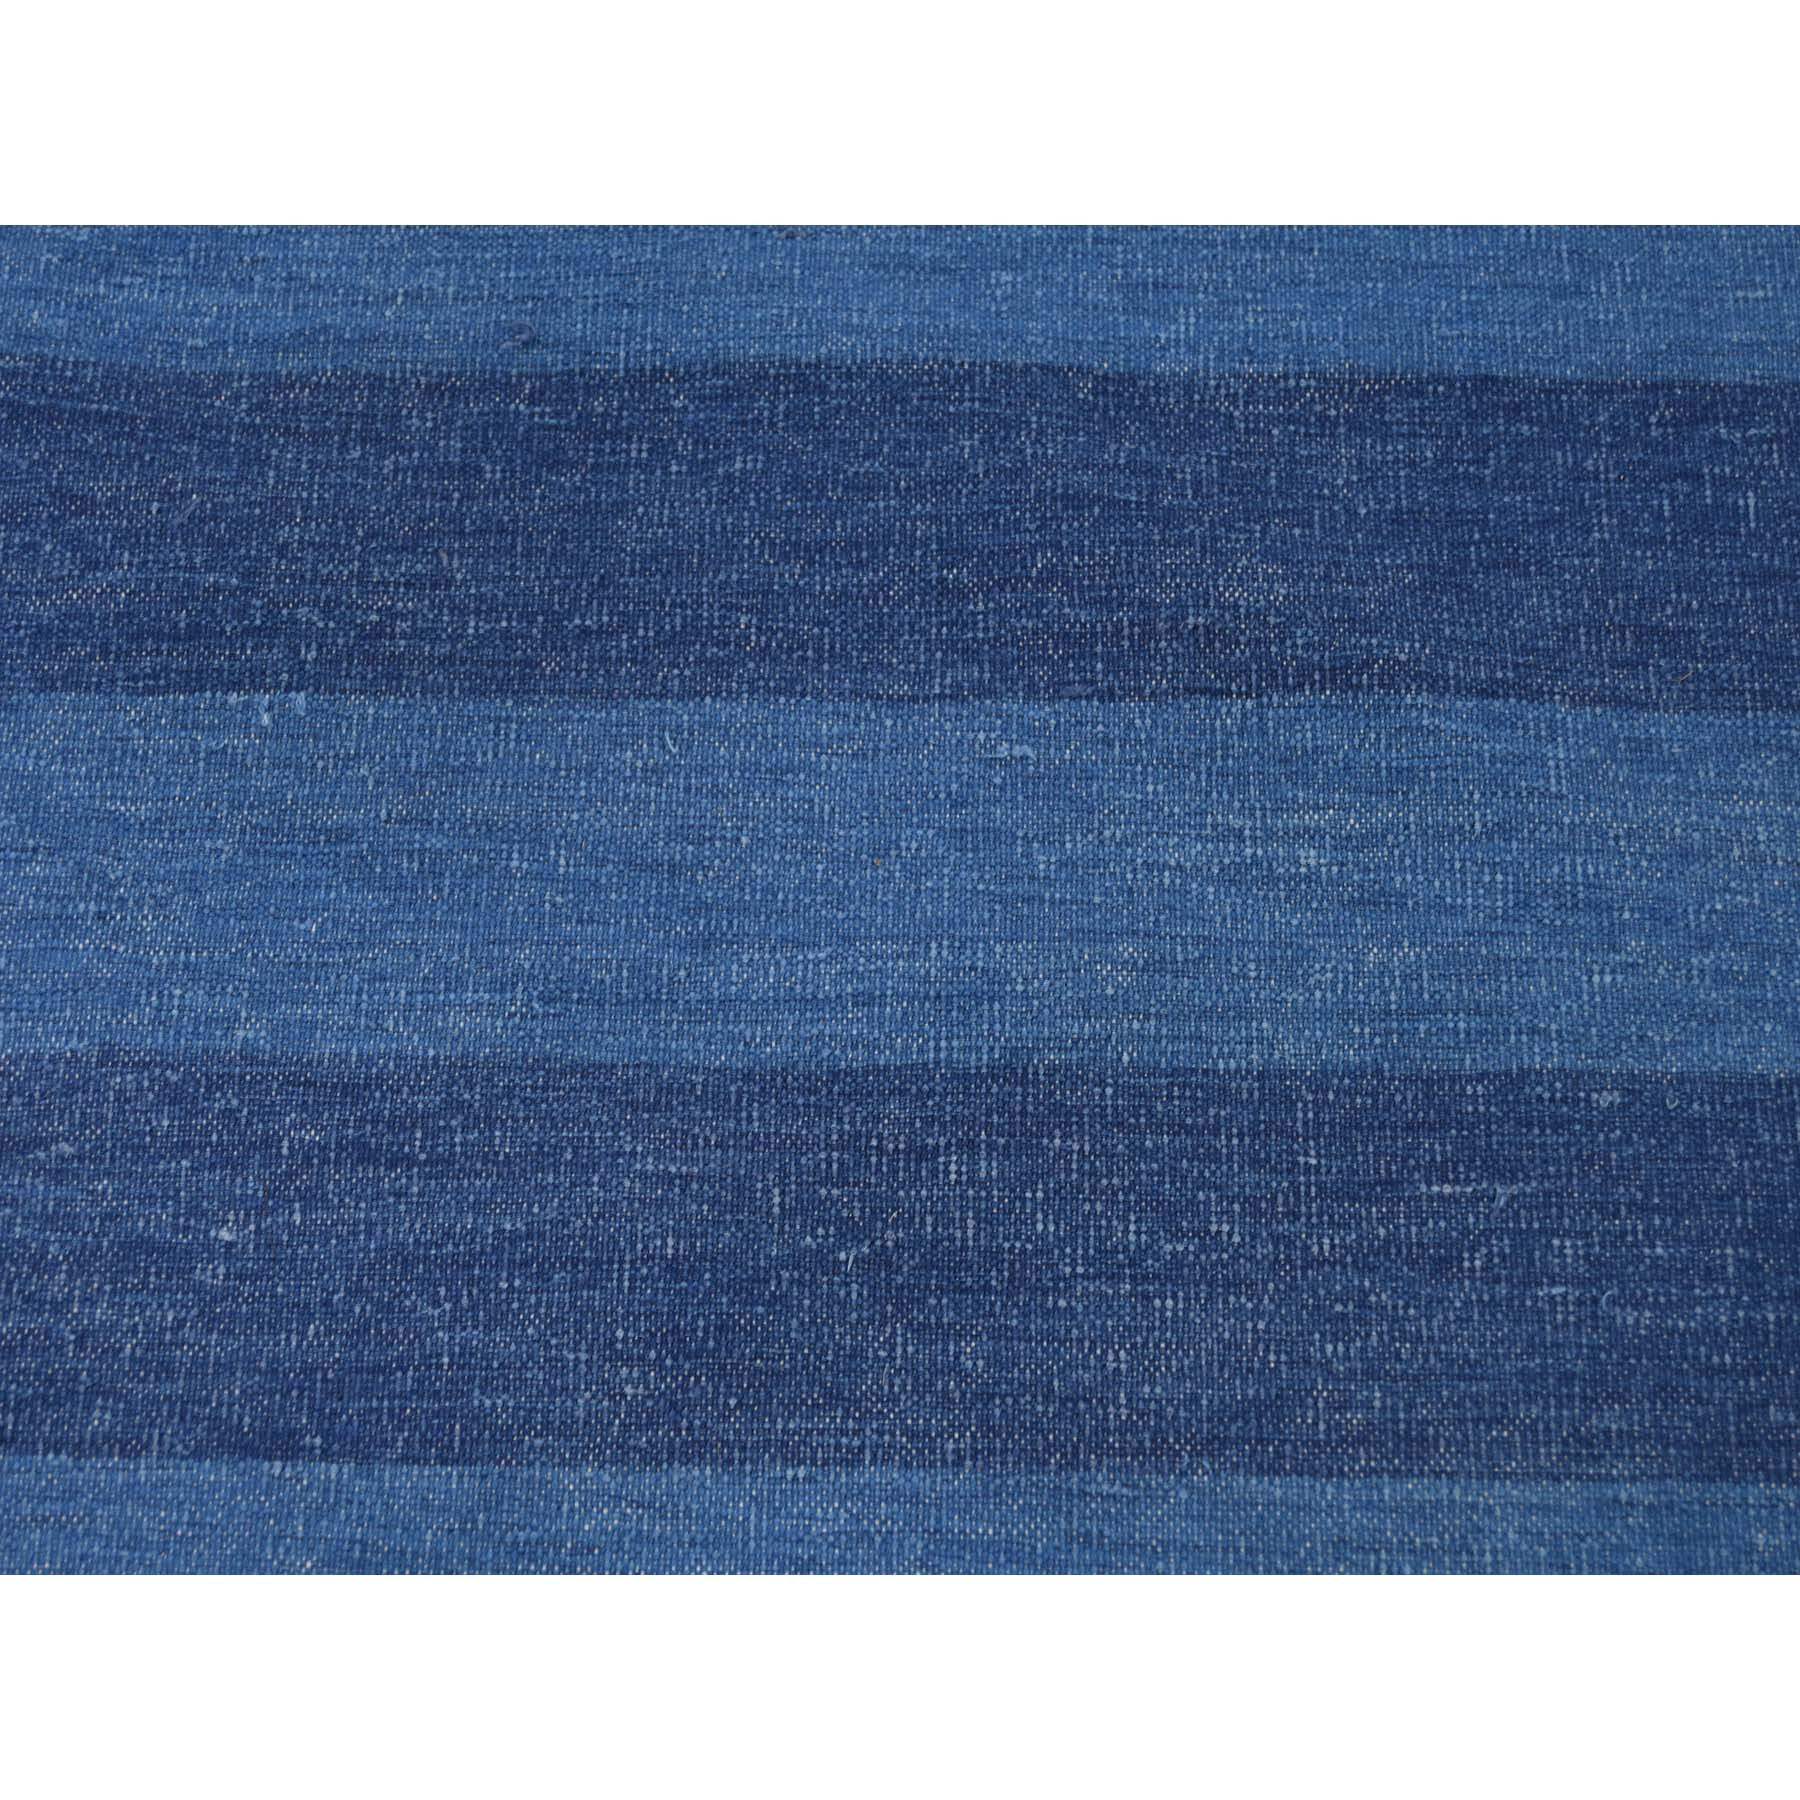 12-6 x14-9  Reversible Durie Kilim Oversize  Flat Weave Pure Cotton Hand Woven Oriental Rug